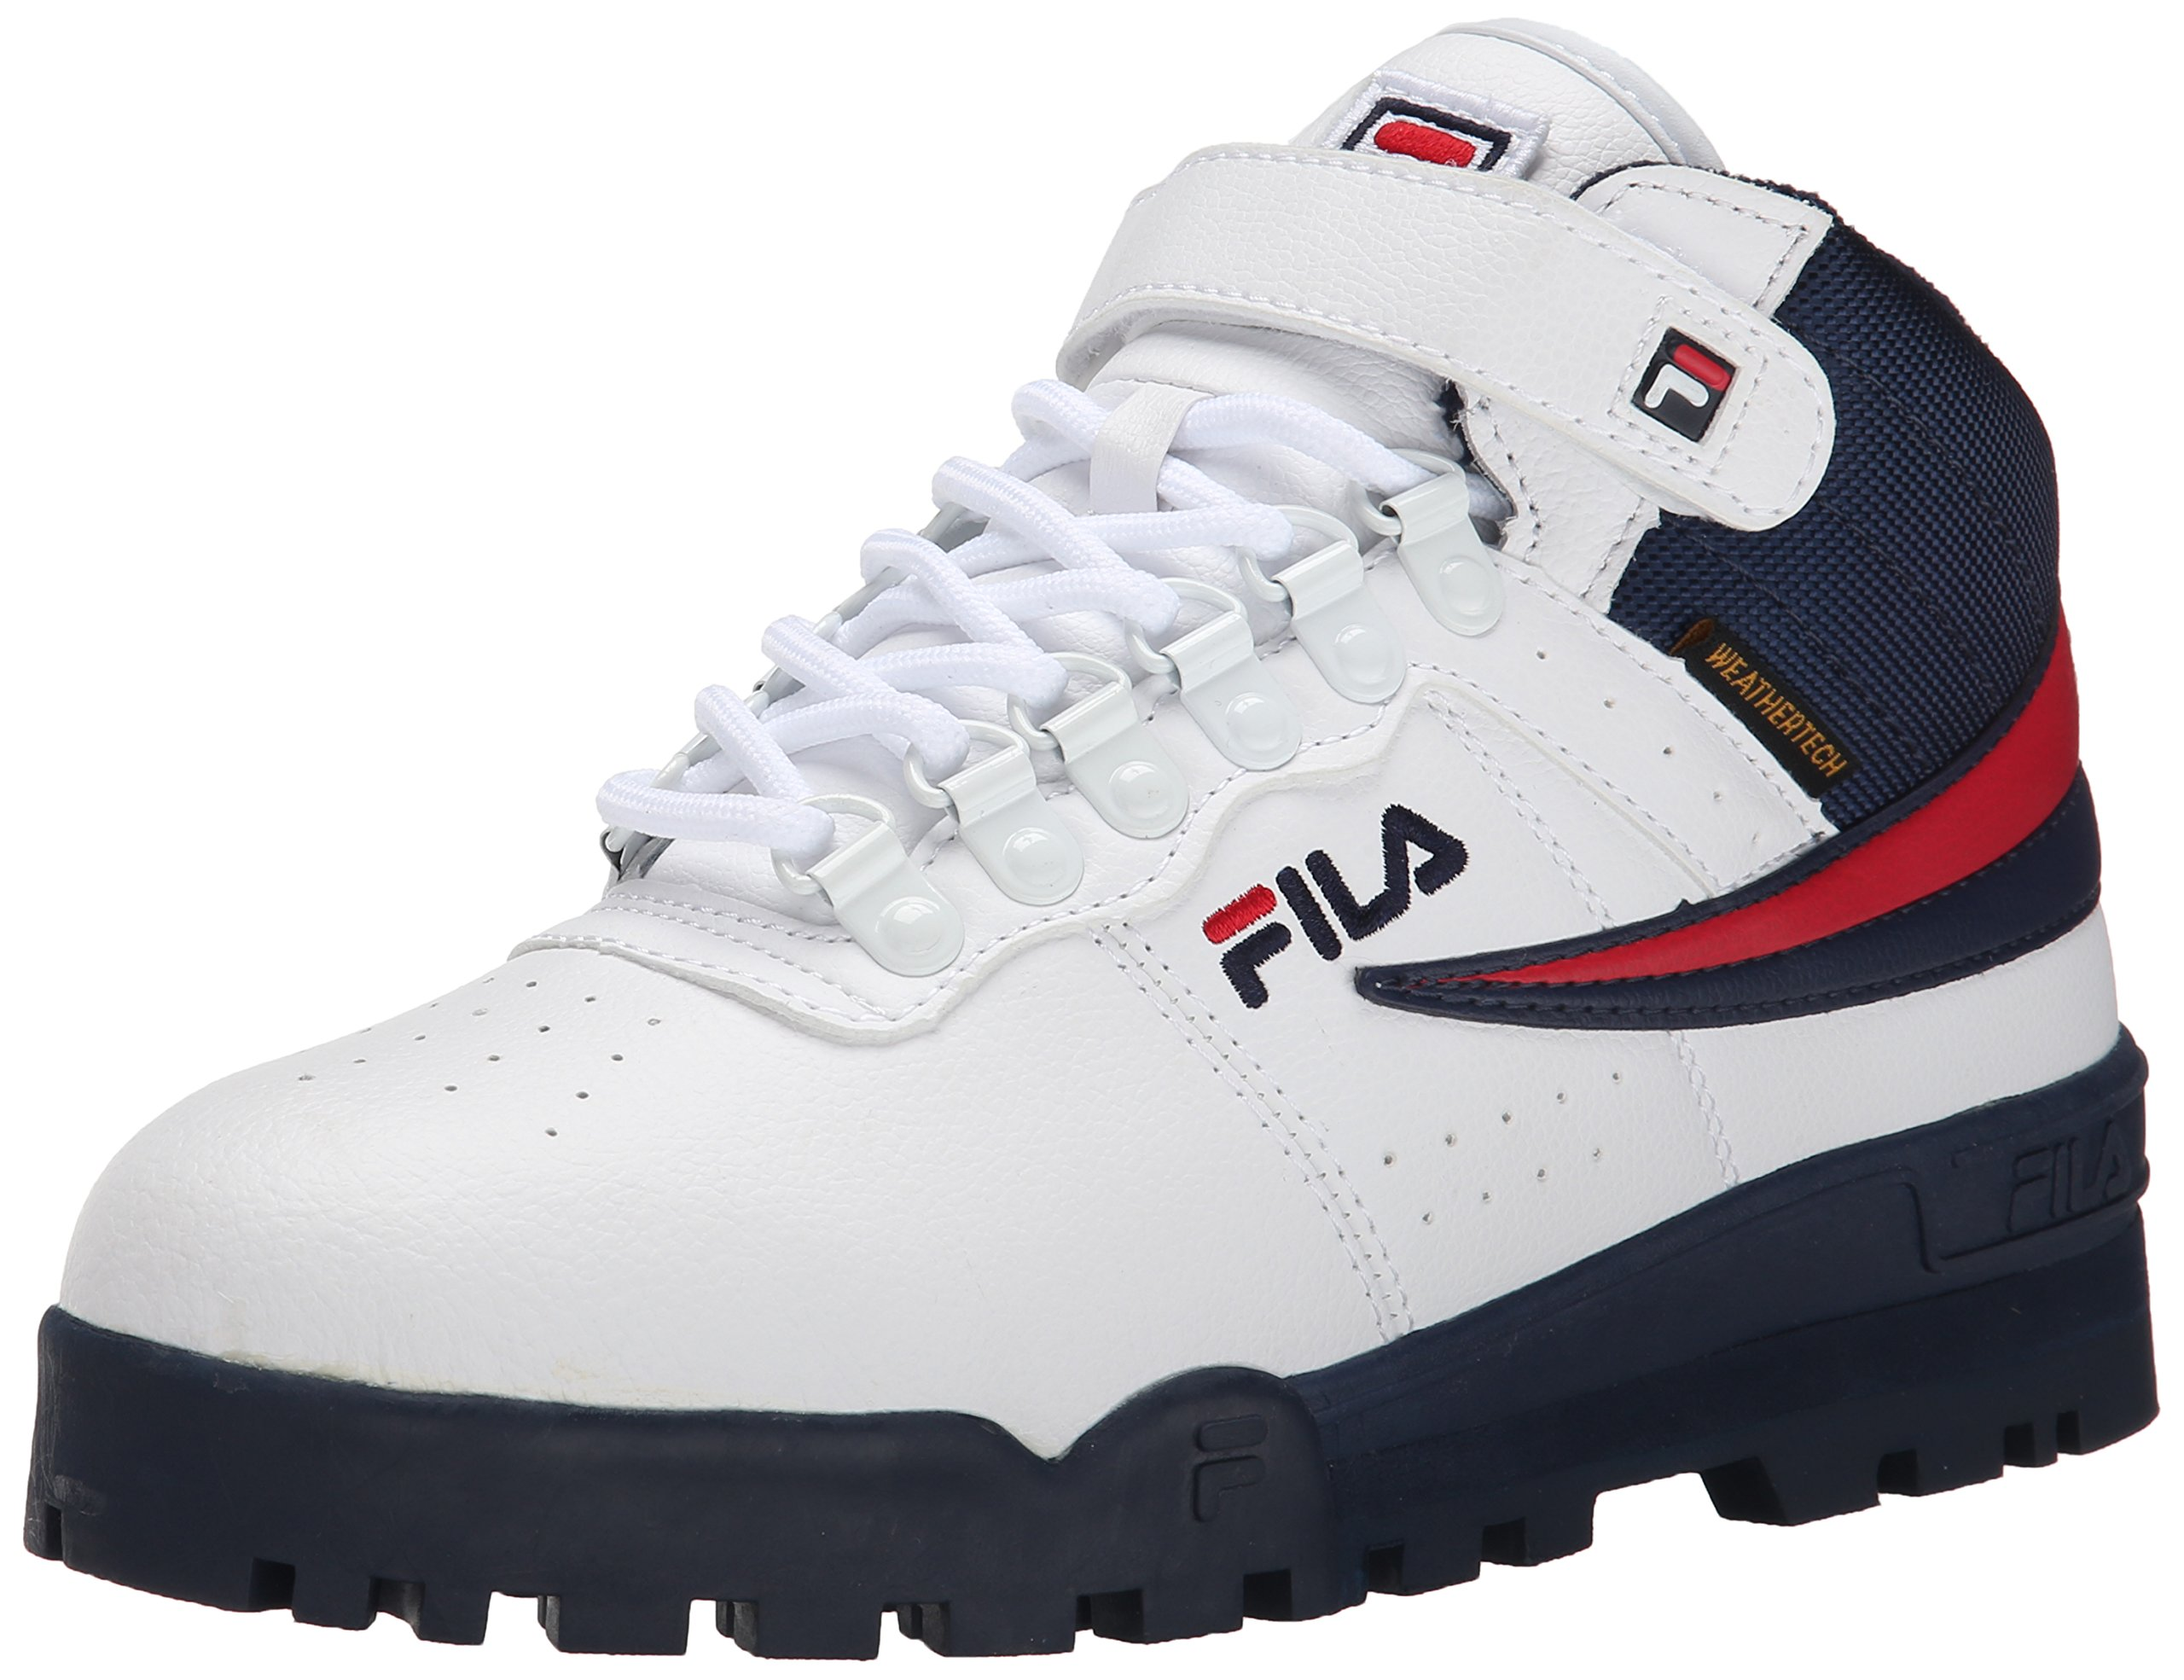 Fila Men's F-13 Weather Tech Hiking Boot, White Navy Red, 11 M US